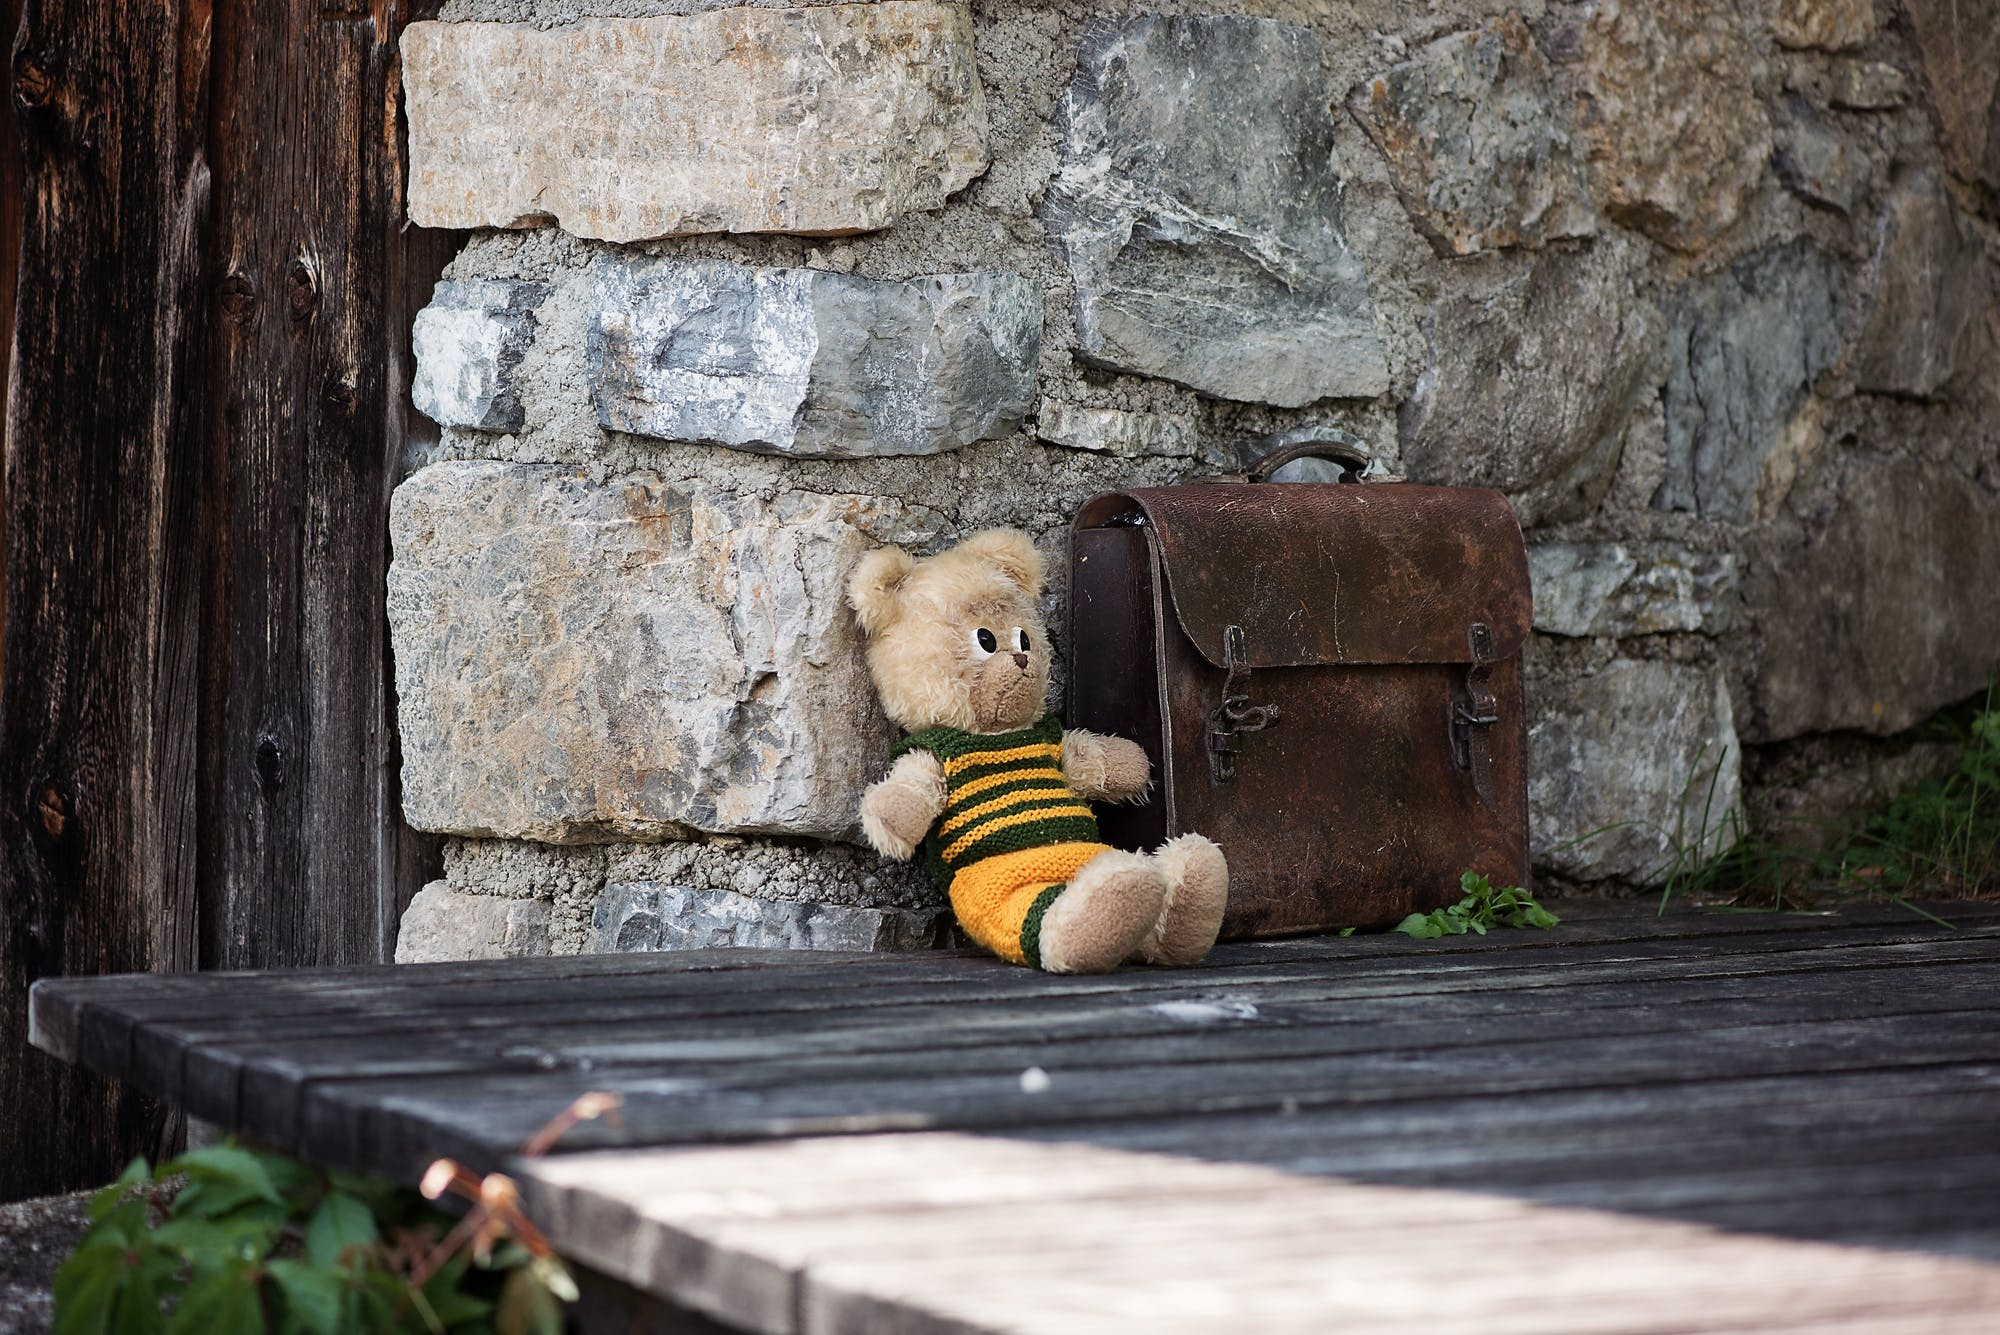 Brown Bear Plush Toy Leaning on Brown Concrete Wall